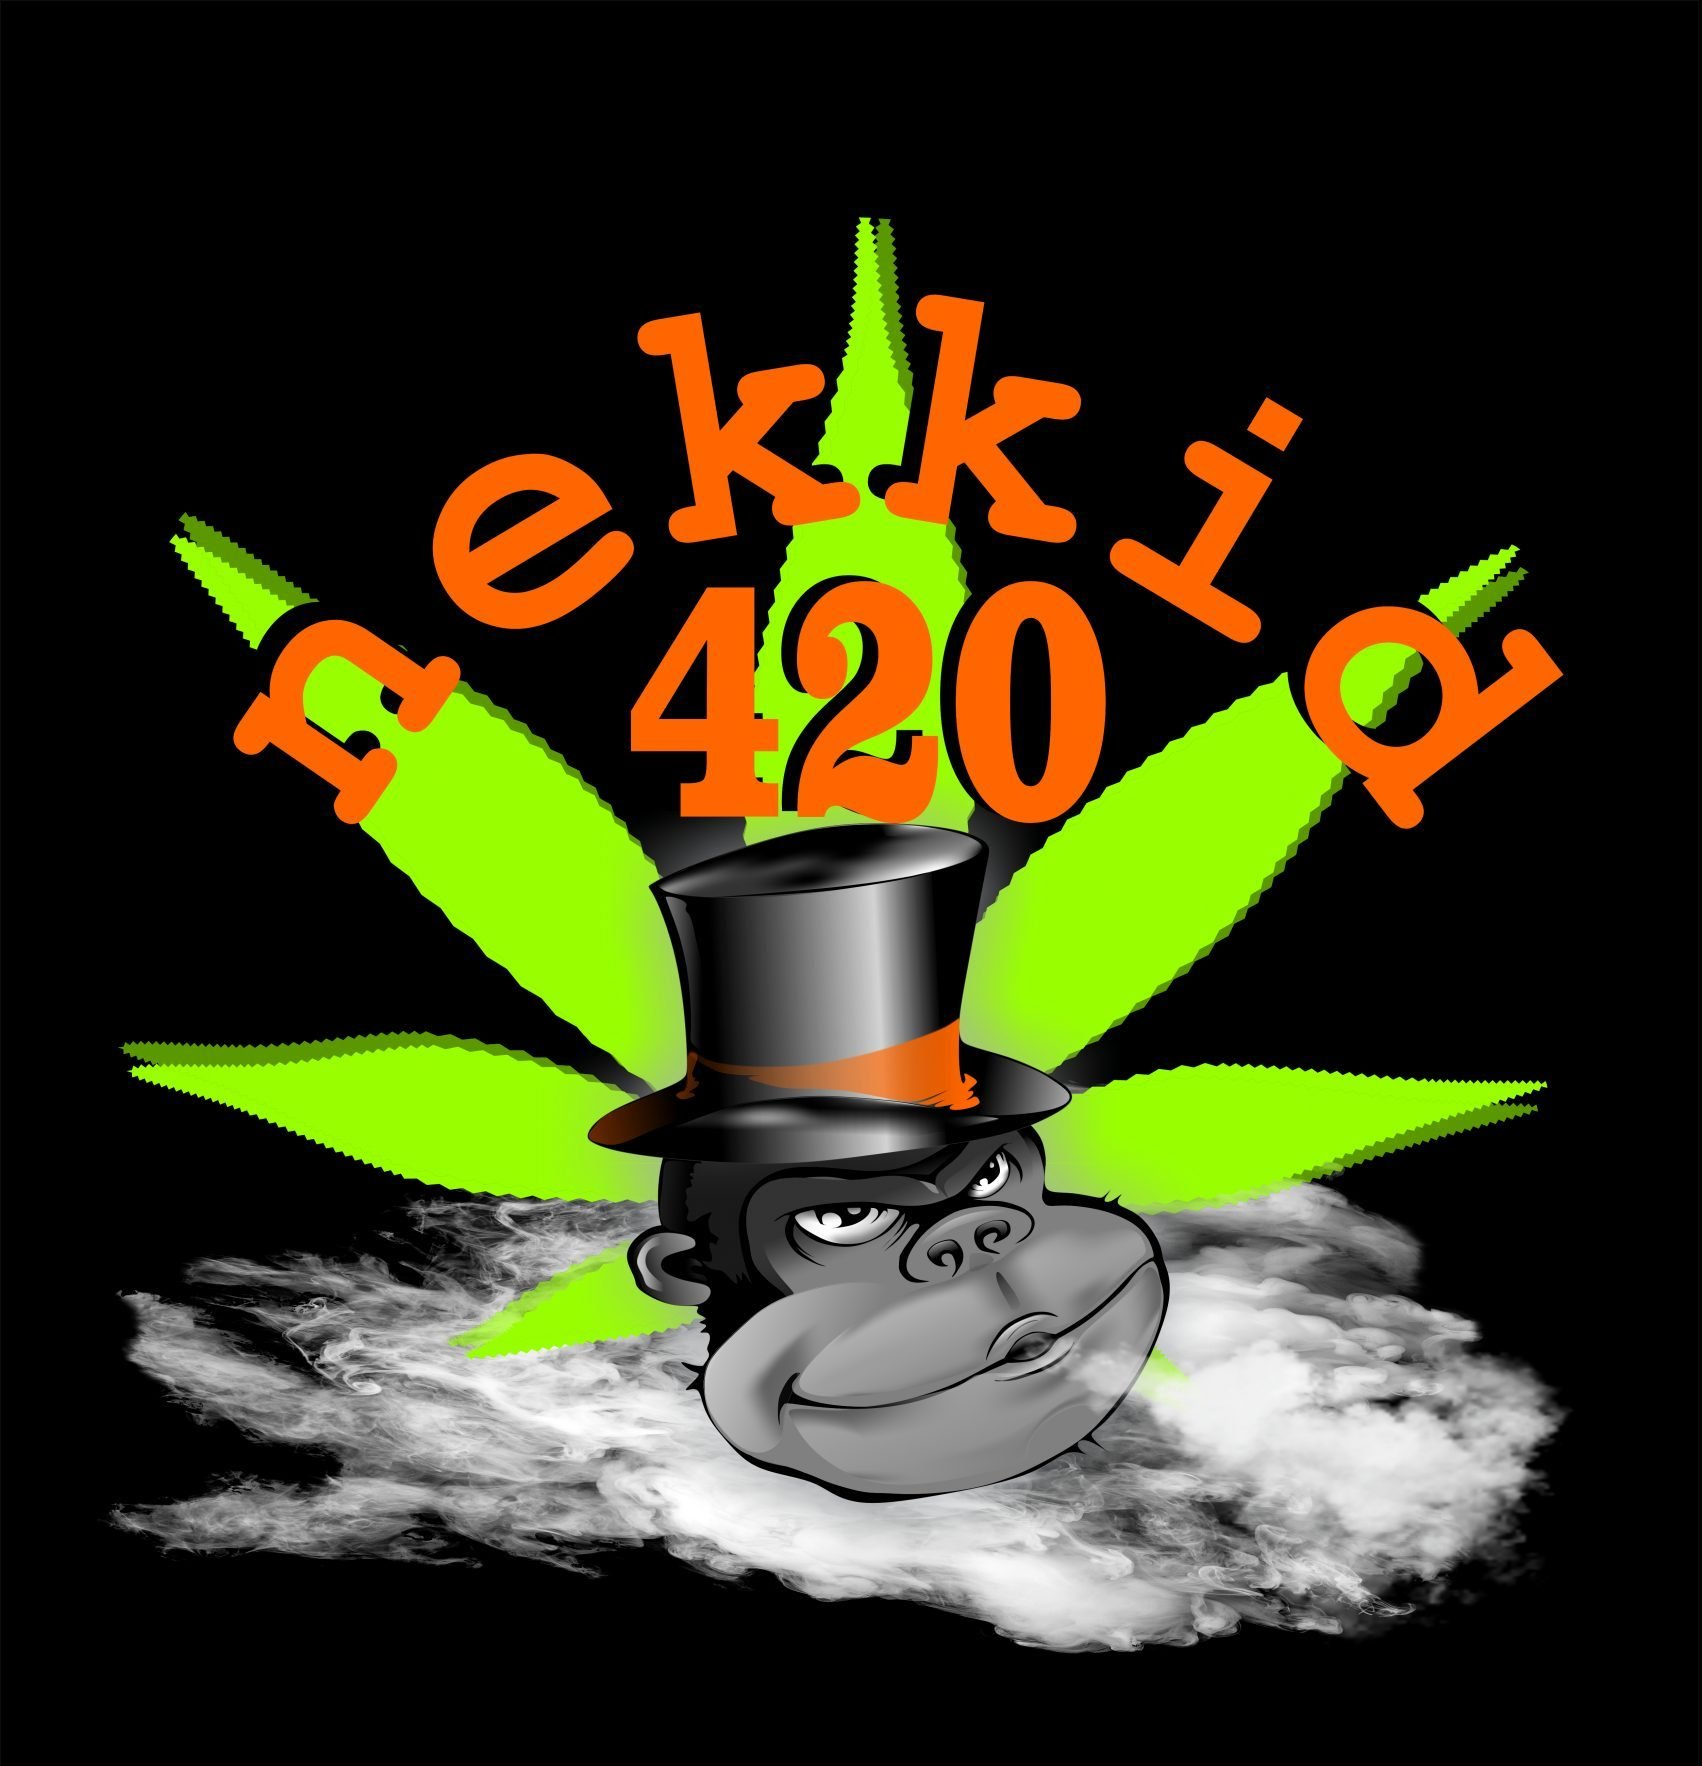 Nekkid 420 Herbal Vaporizers